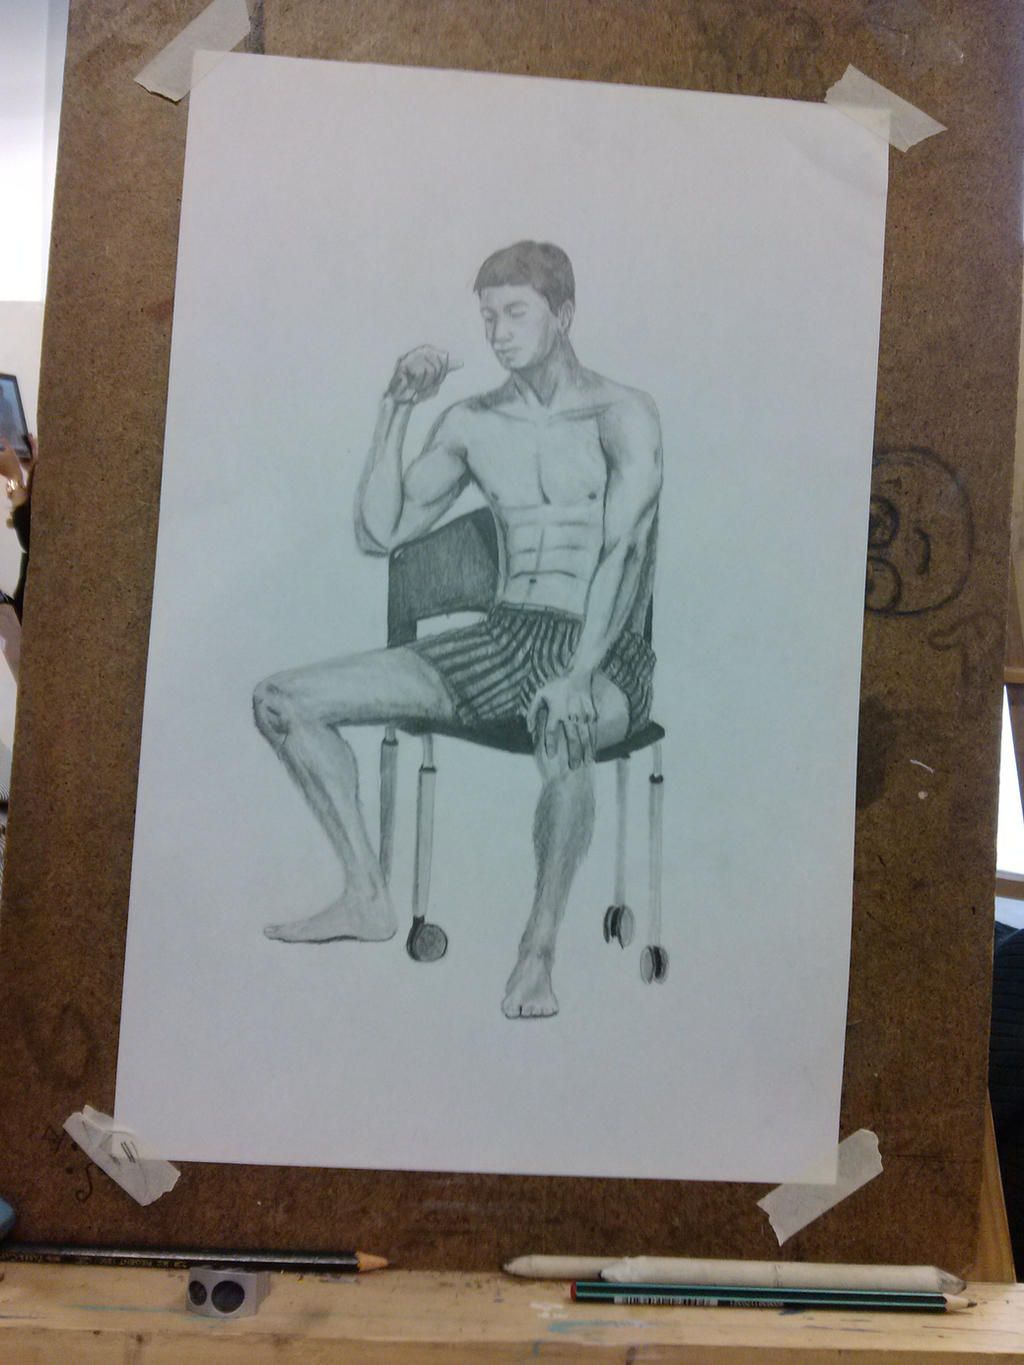 Man sitting in chair drawing -  Man Sitting On A Chair By Upcoraul